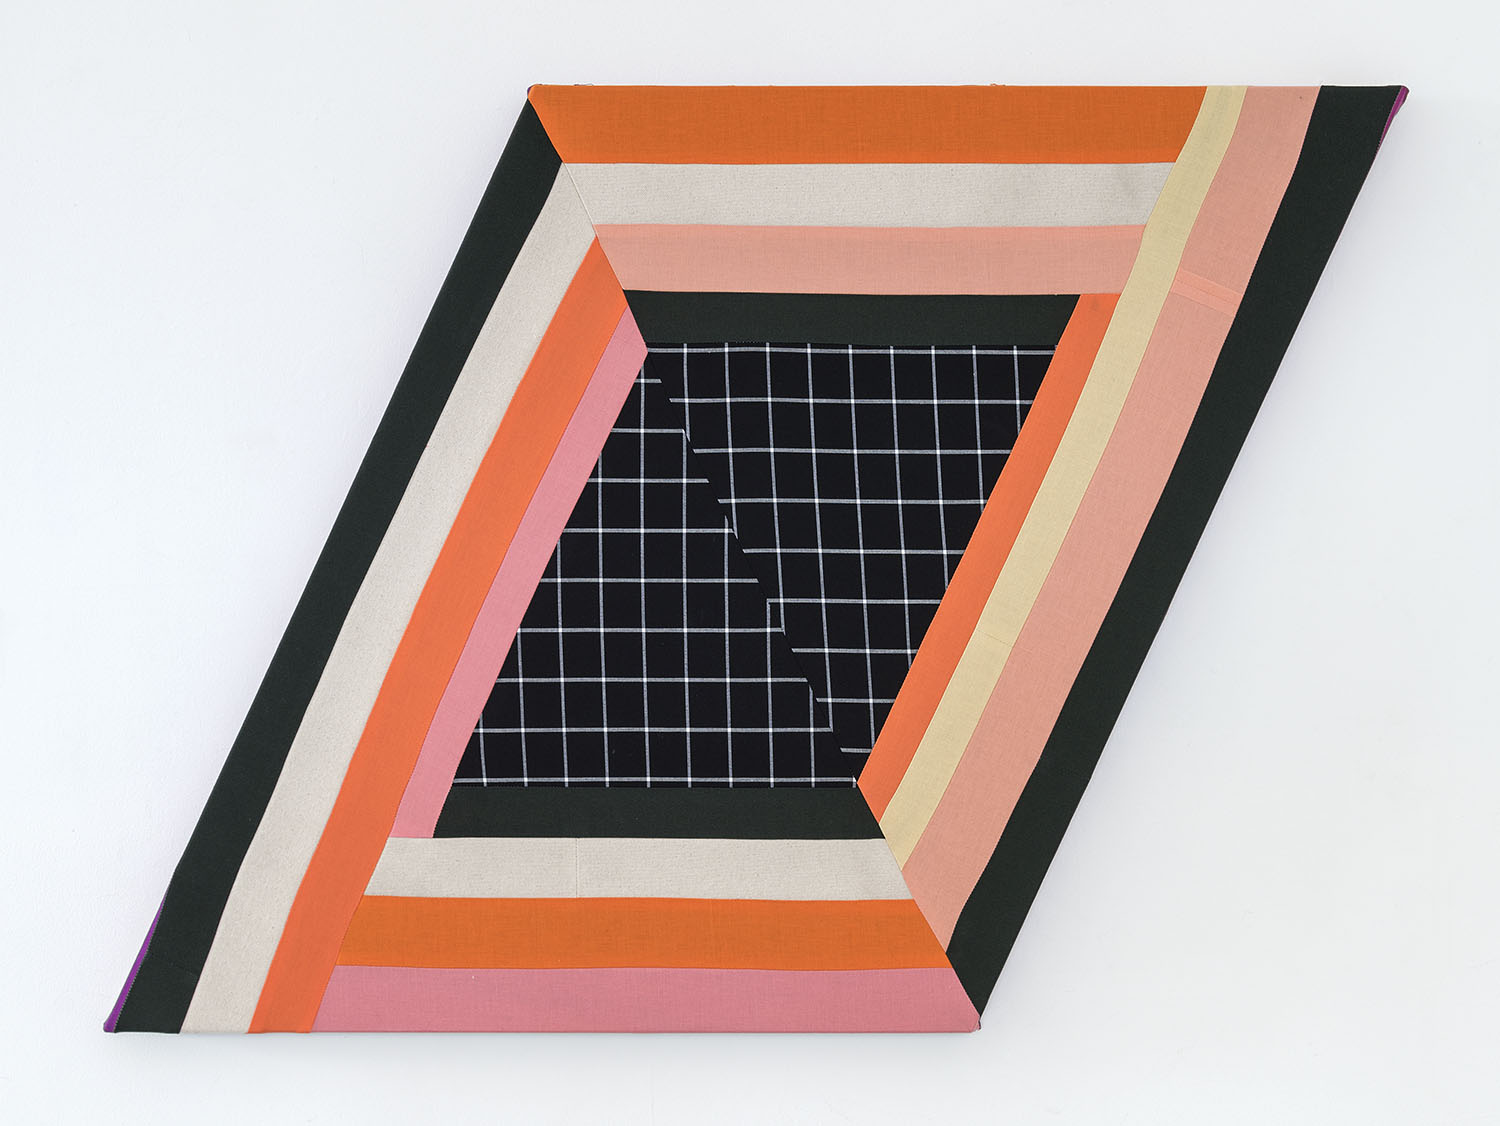 Fruit Machine   ,  2019 Sewn cotton and canvas on shaped support 25 x 34.5 inches overall (63.5 x 87.6 cm overall)